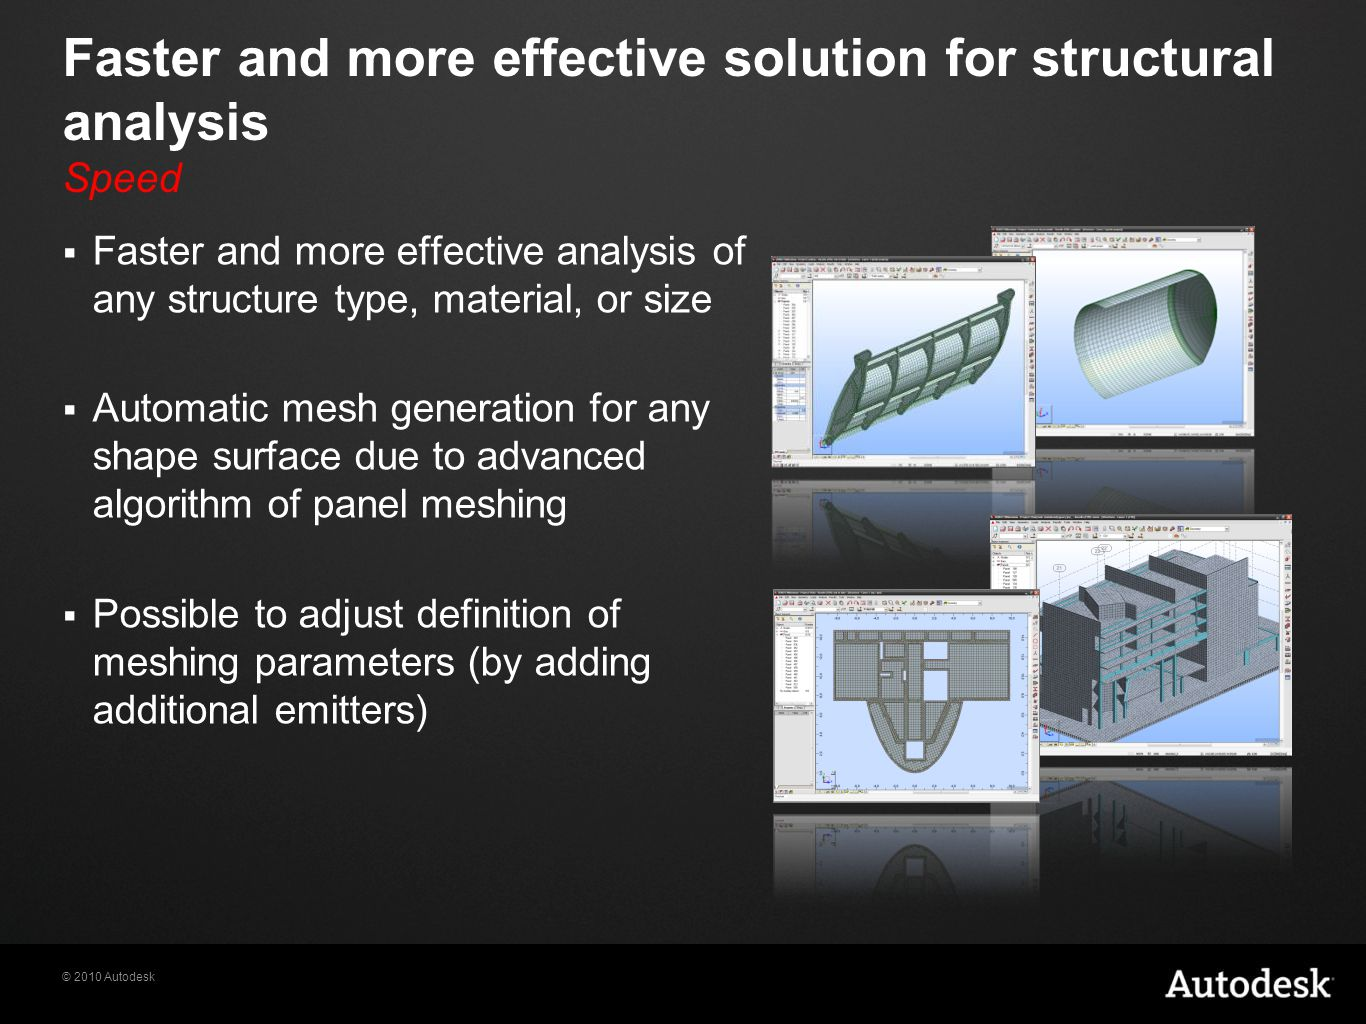 © 2010 Autodesk Faster and more effective solution for structural analysis Speed  Faster and more effective analysis of any structure type, material, or size  Automatic mesh generation for any shape surface due to advanced algorithm of panel meshing  Possible to adjust definition of meshing parameters (by adding additional emitters)